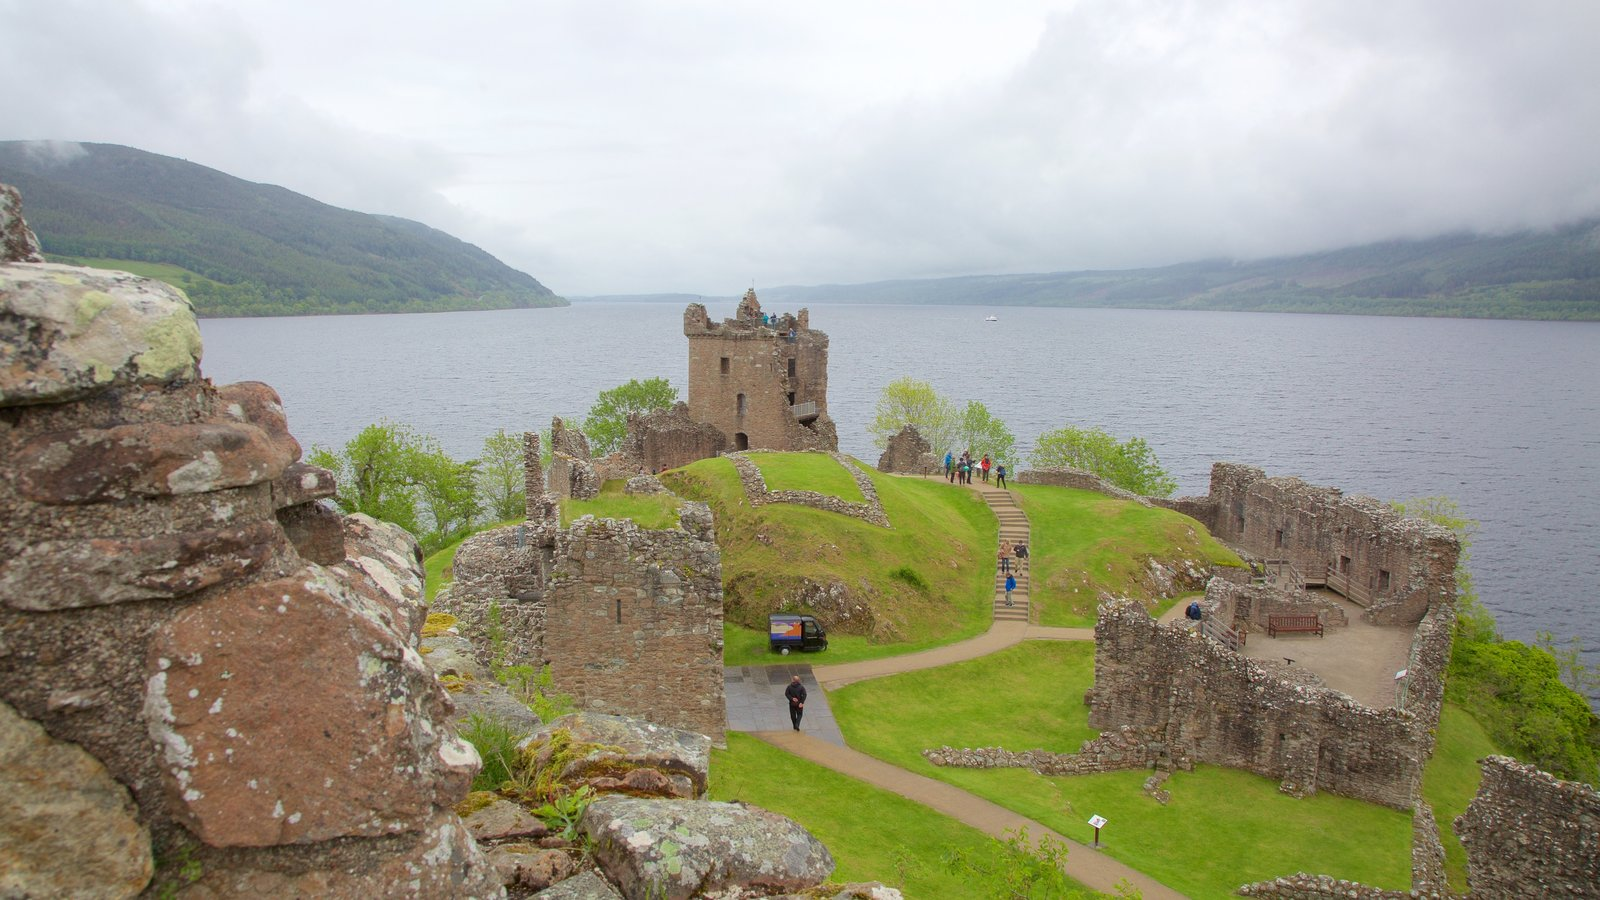 Urquhart Castle which includes building ruins, a lake or waterhole and heritage elements